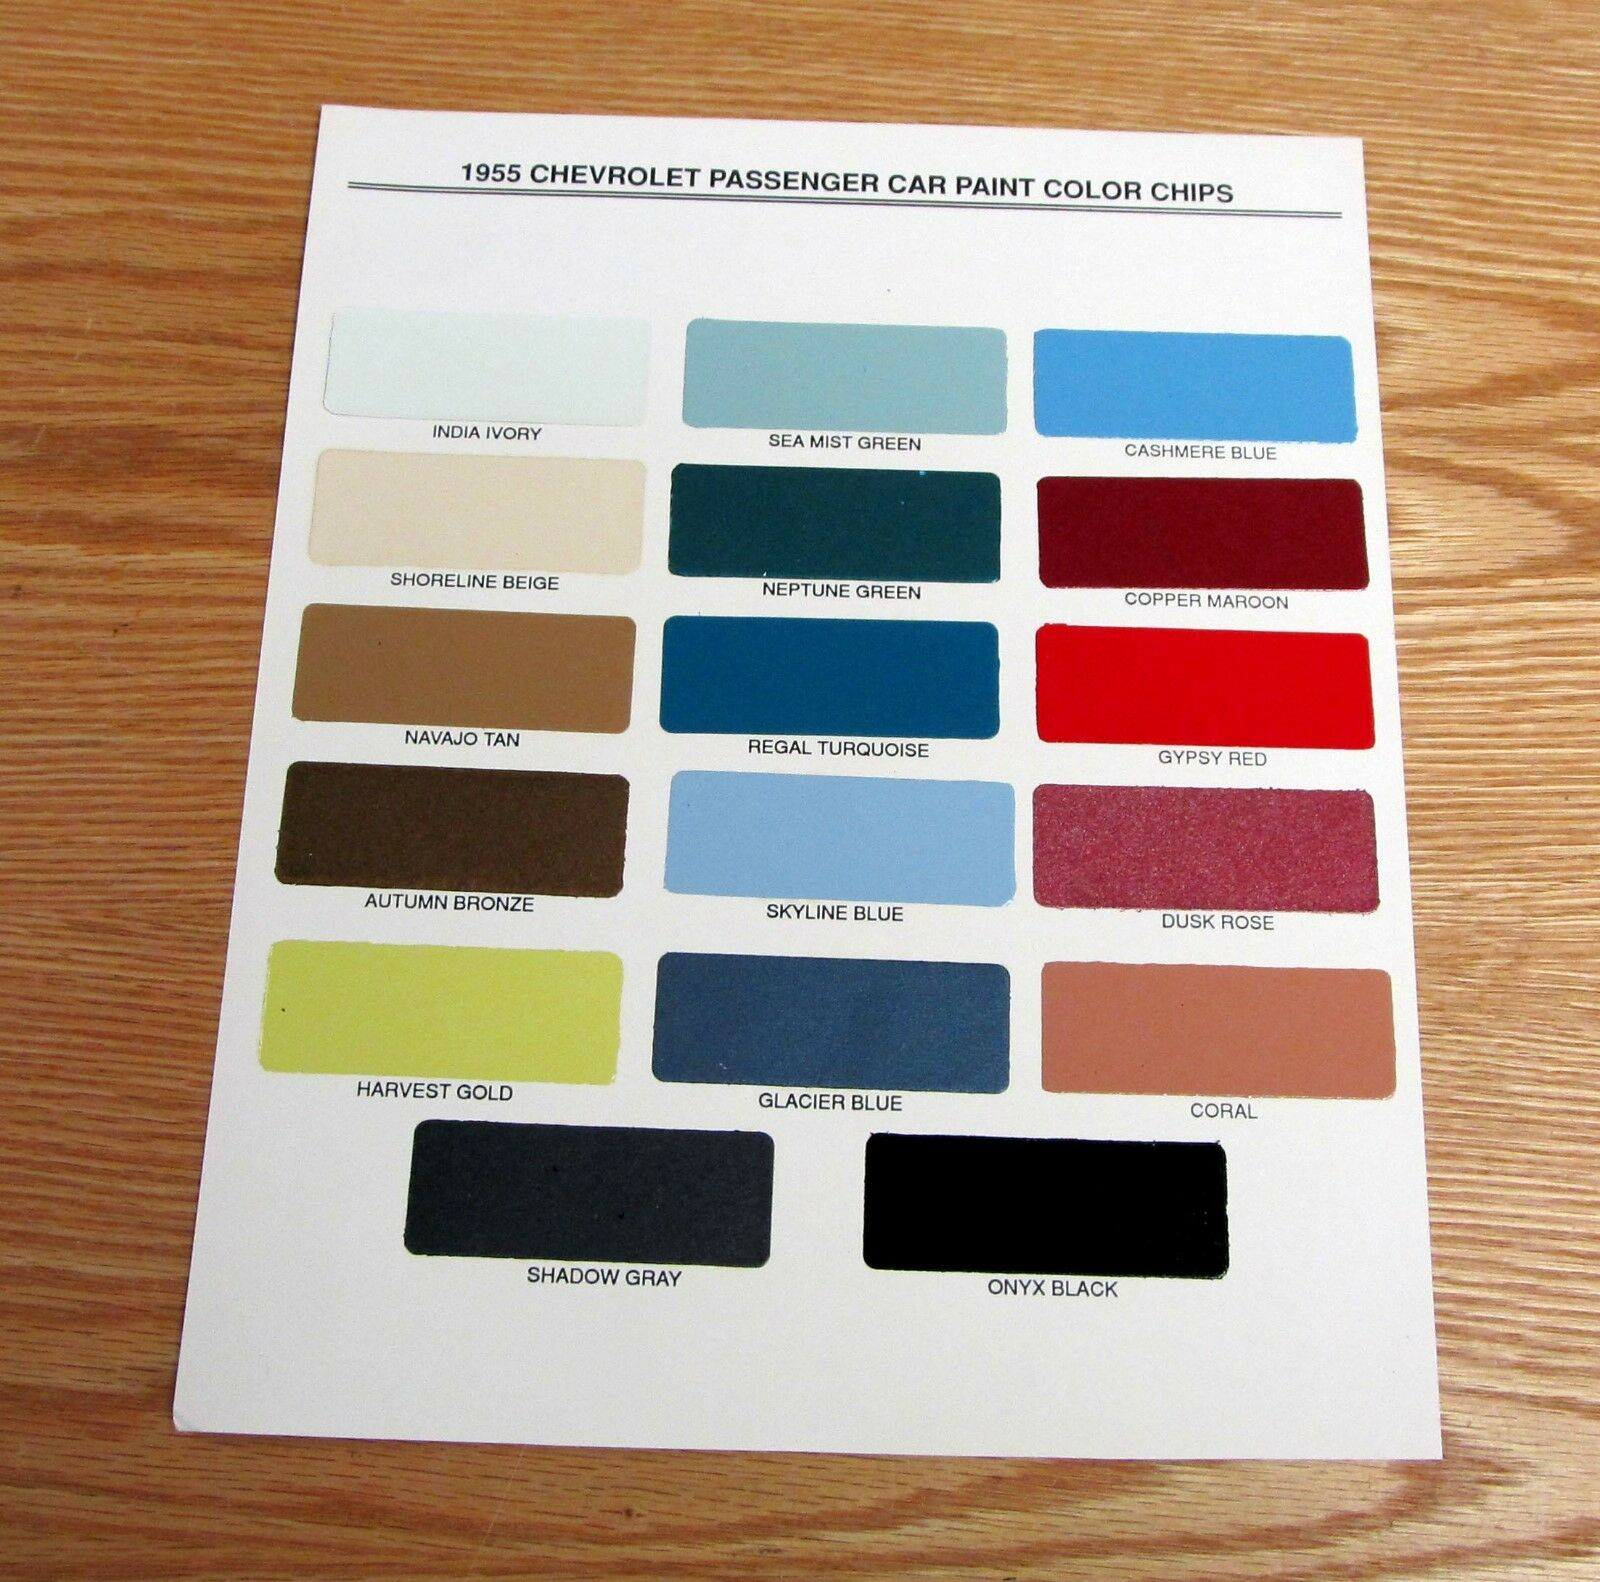 1955 Chevy Paint Chip Chart All Original Colors Usa Made 1954 Chevrolet Truck 1 Of 2free Shipping